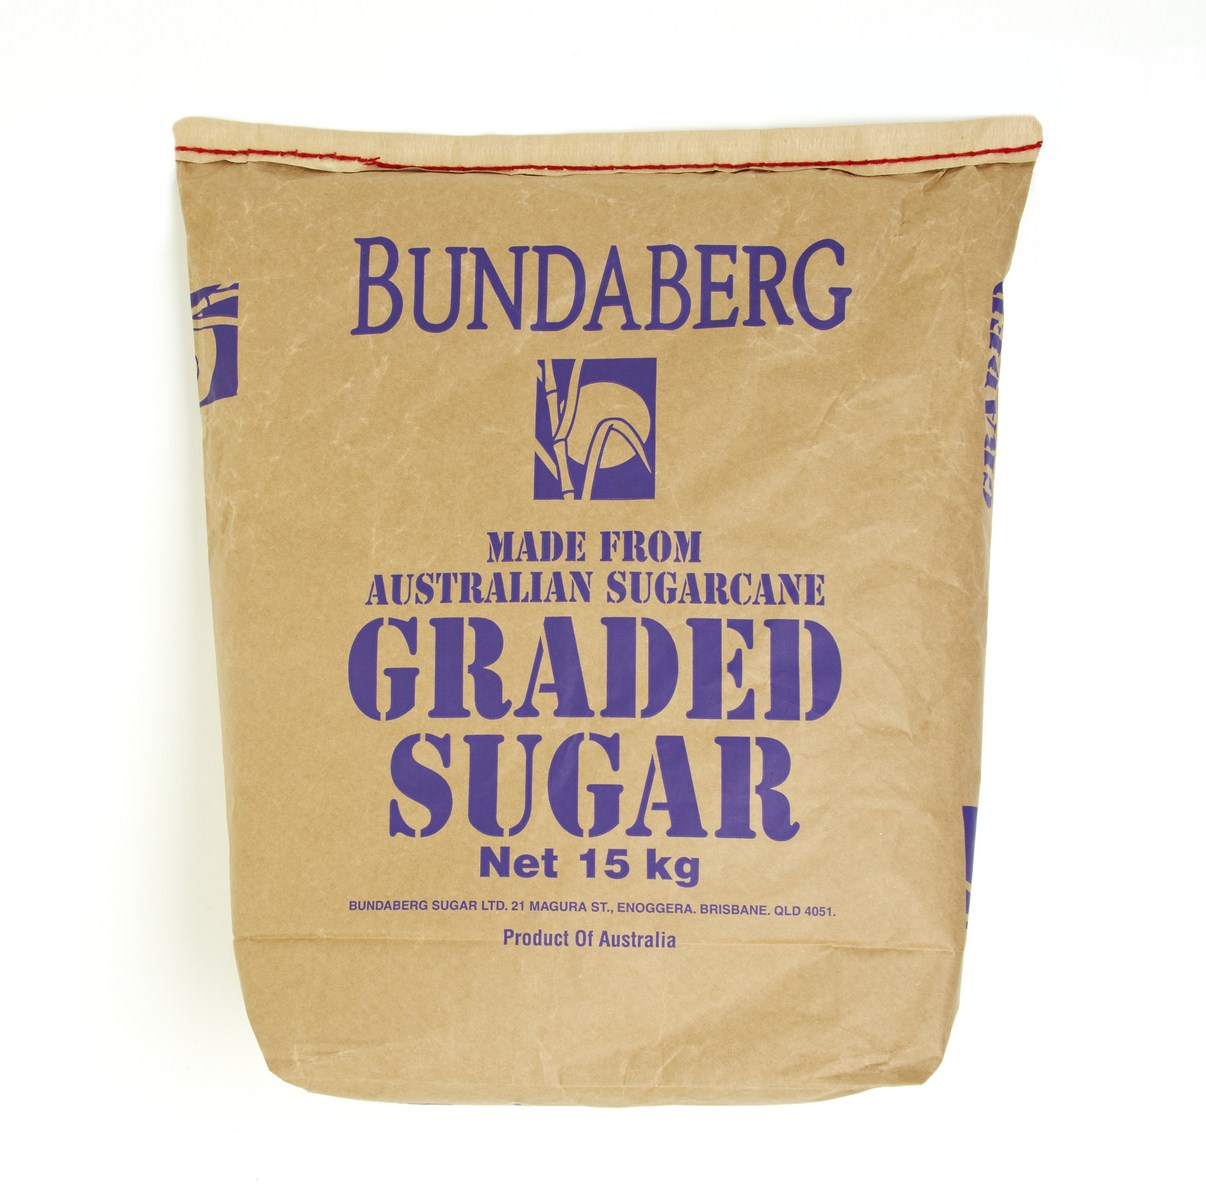 Bundaberg Graded Sugar